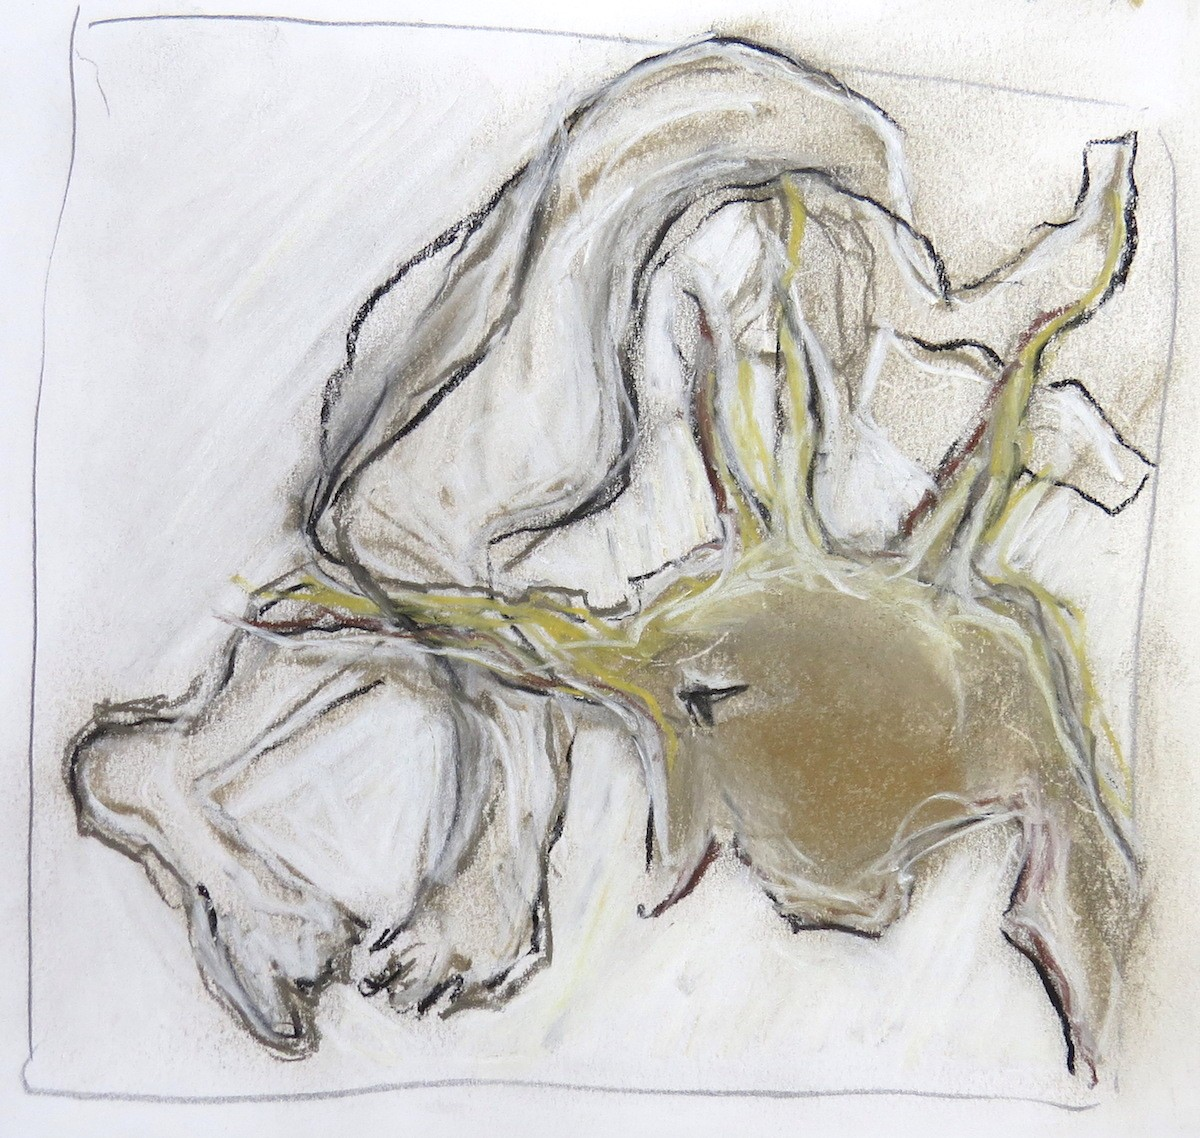 studio drawing in charcoal and pastel by Canadian contemporary artist barbra edwards, Gulf Islands, BC